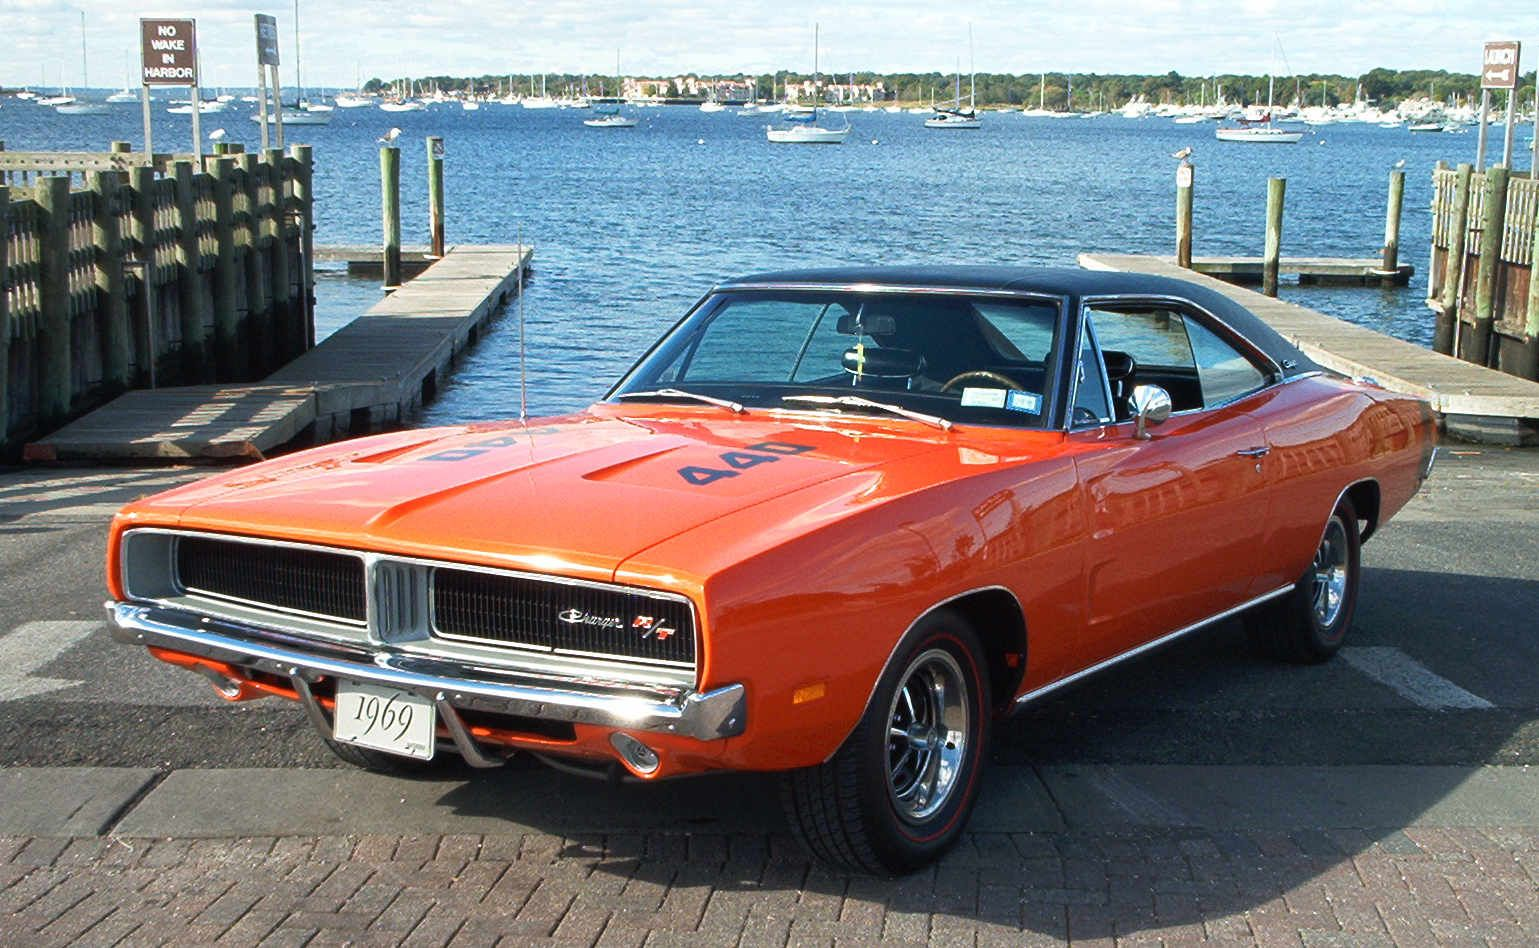 1969 dodge charger r t 440 magnum my ultimate dream ride tao rh pinterest co uk